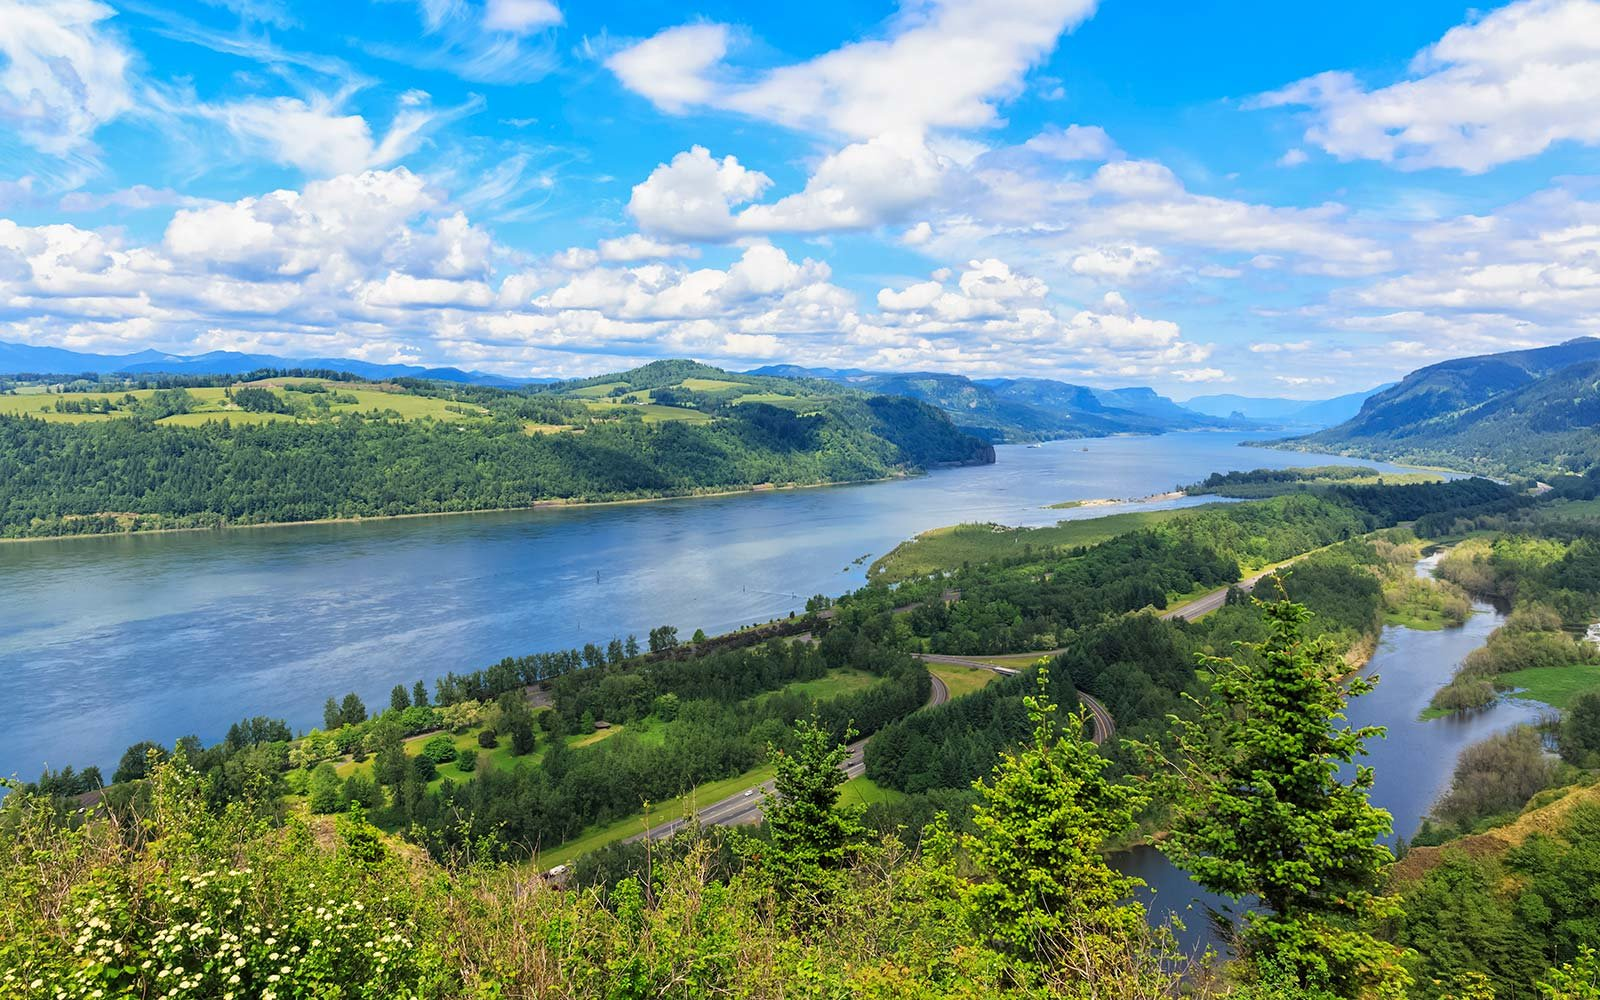 USA, Oregon and Washington, Columbia River Gorge as seen from Crown Point Portland Hike Adventure